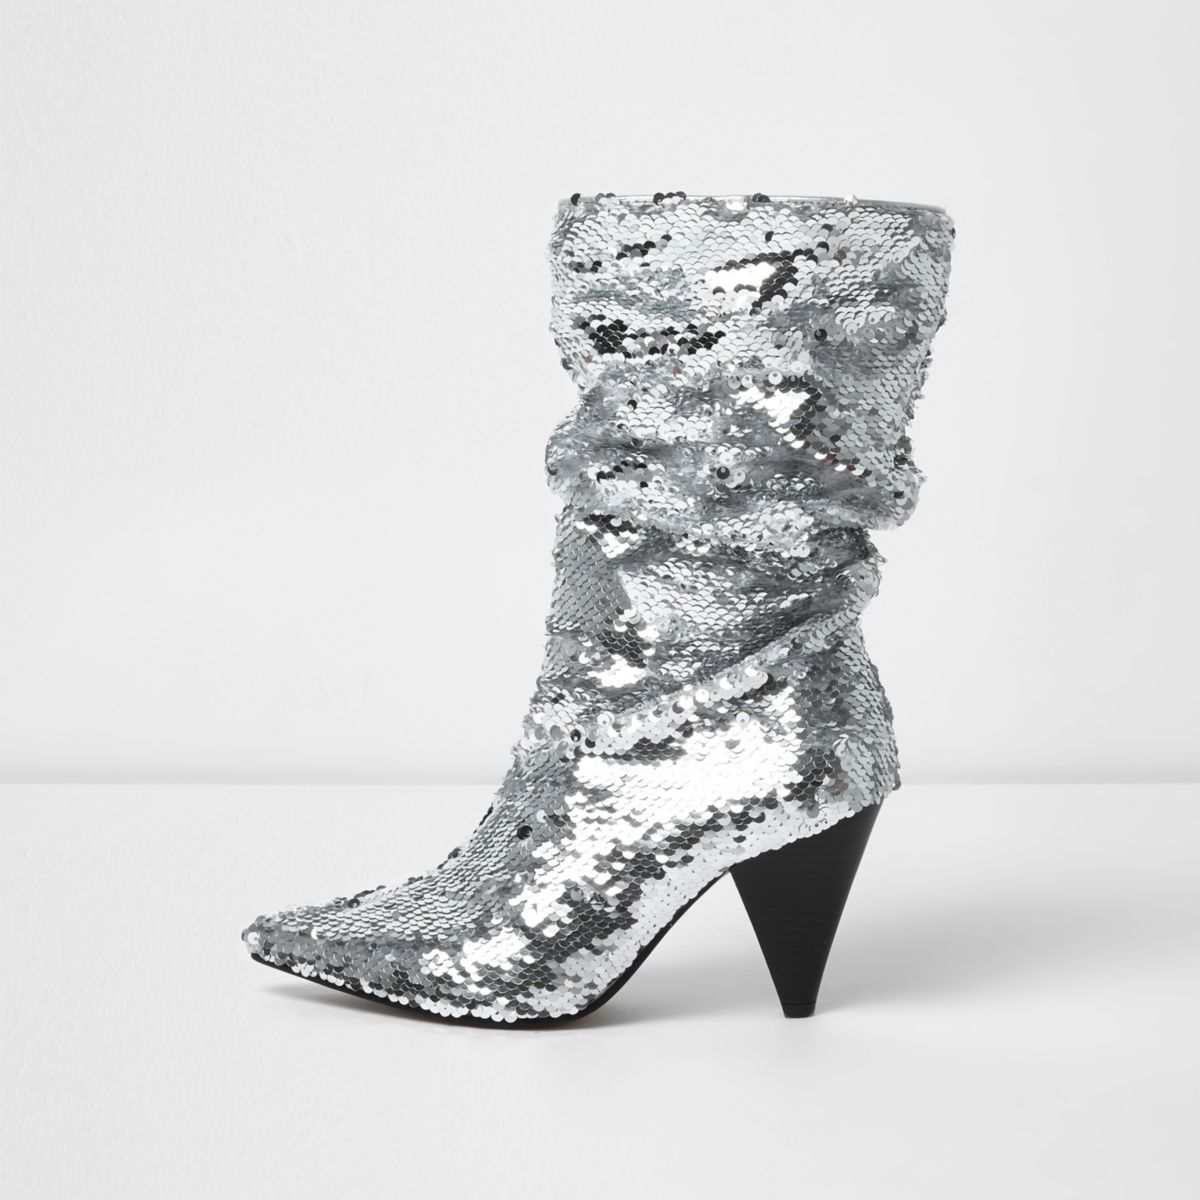 silver boots - up to 70% off. Well, darn. This item just sold out. Select notify me & we'll tell you when it's back in stock.